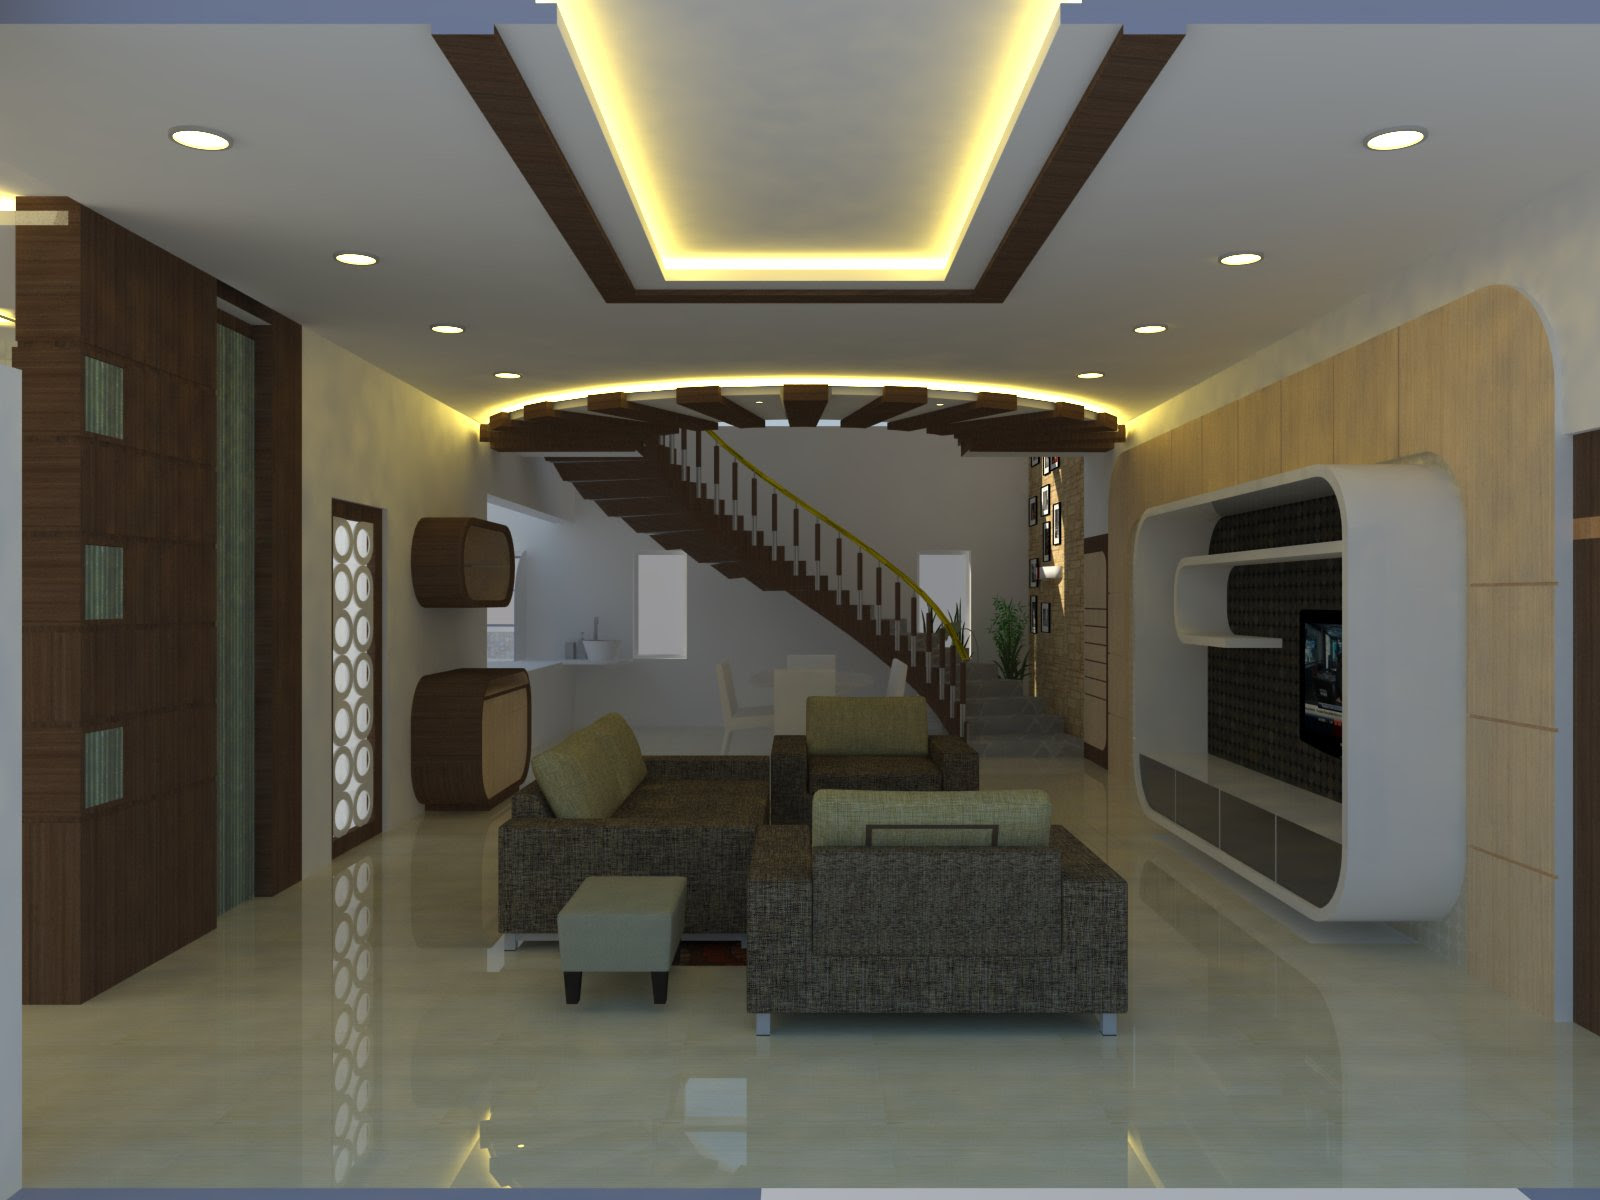 Interior Designers In Hyderabad ~ beautiful home interiors - Architecture And Interior Design Firms In Hyderabad Psoriasisguru.com